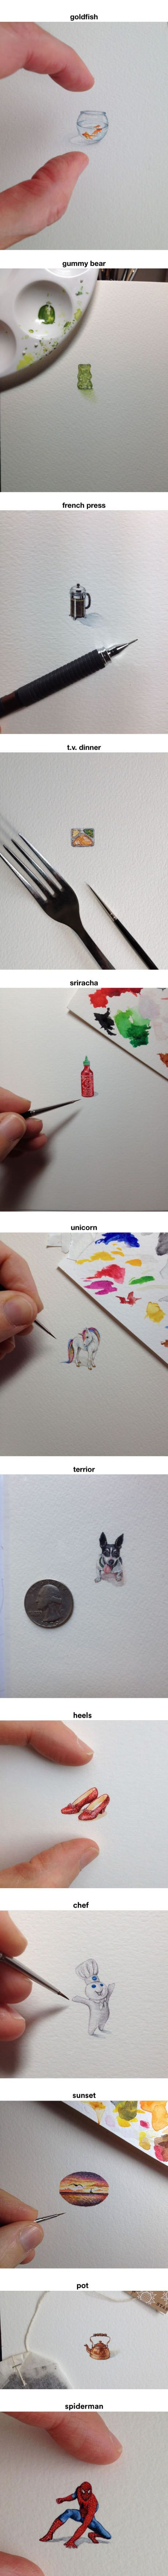 Watch These 12 Incredible And Tiny Drawings (By Brooke Rothshank)